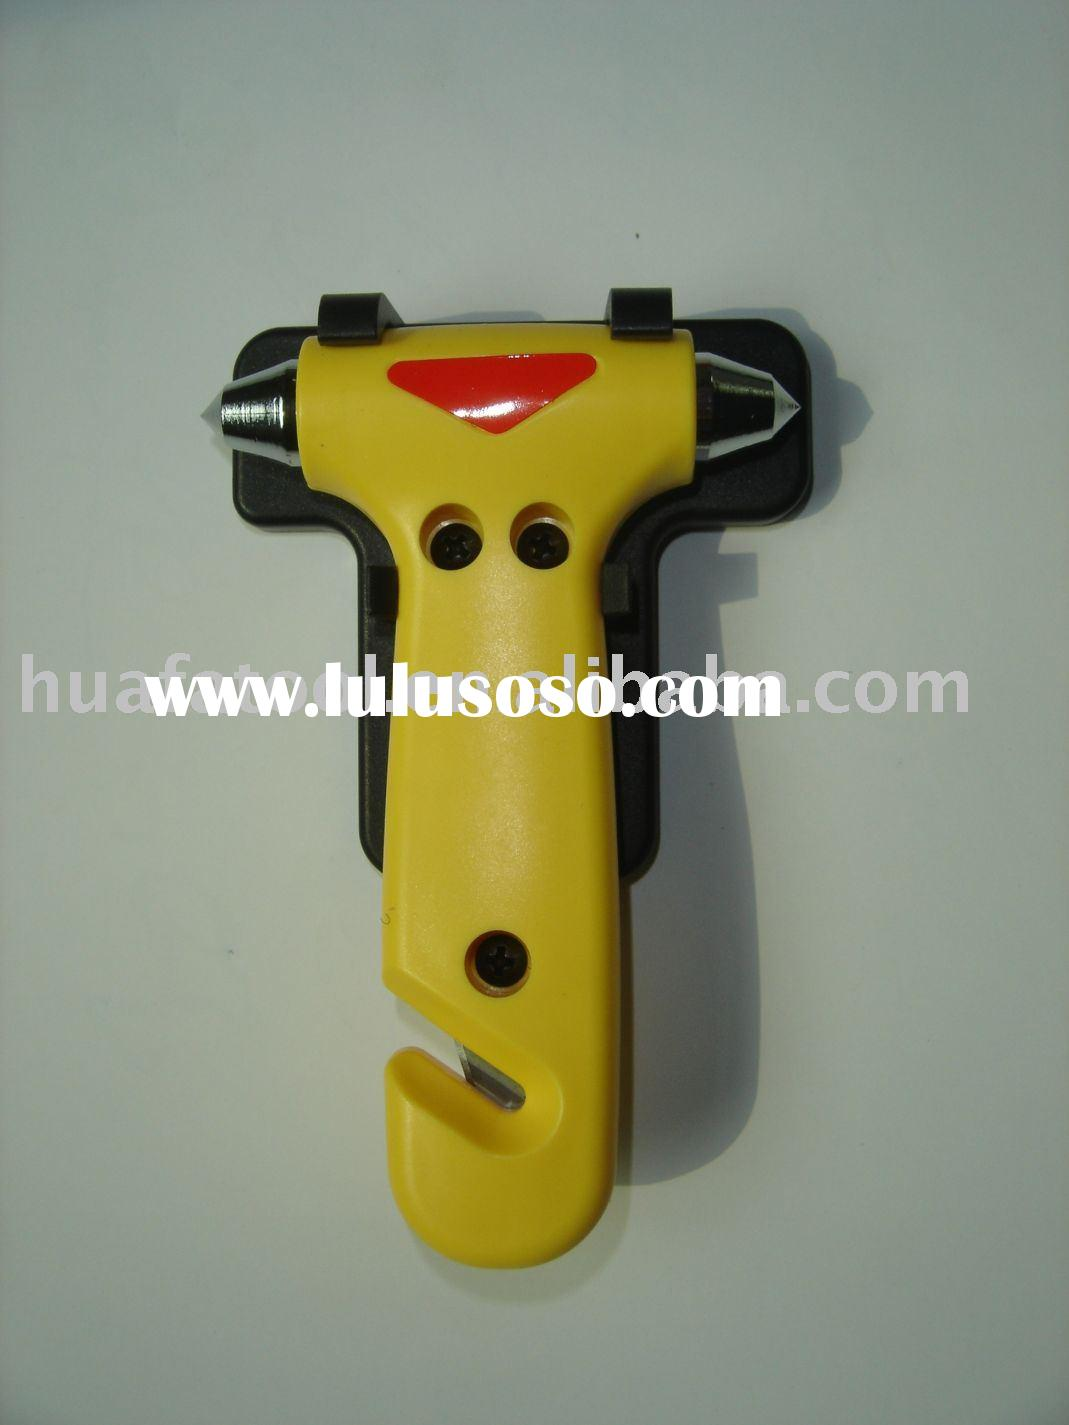 car emergency hammer,escape hammer,emergency tools,car hammer,led emergency hammer,hammer tool